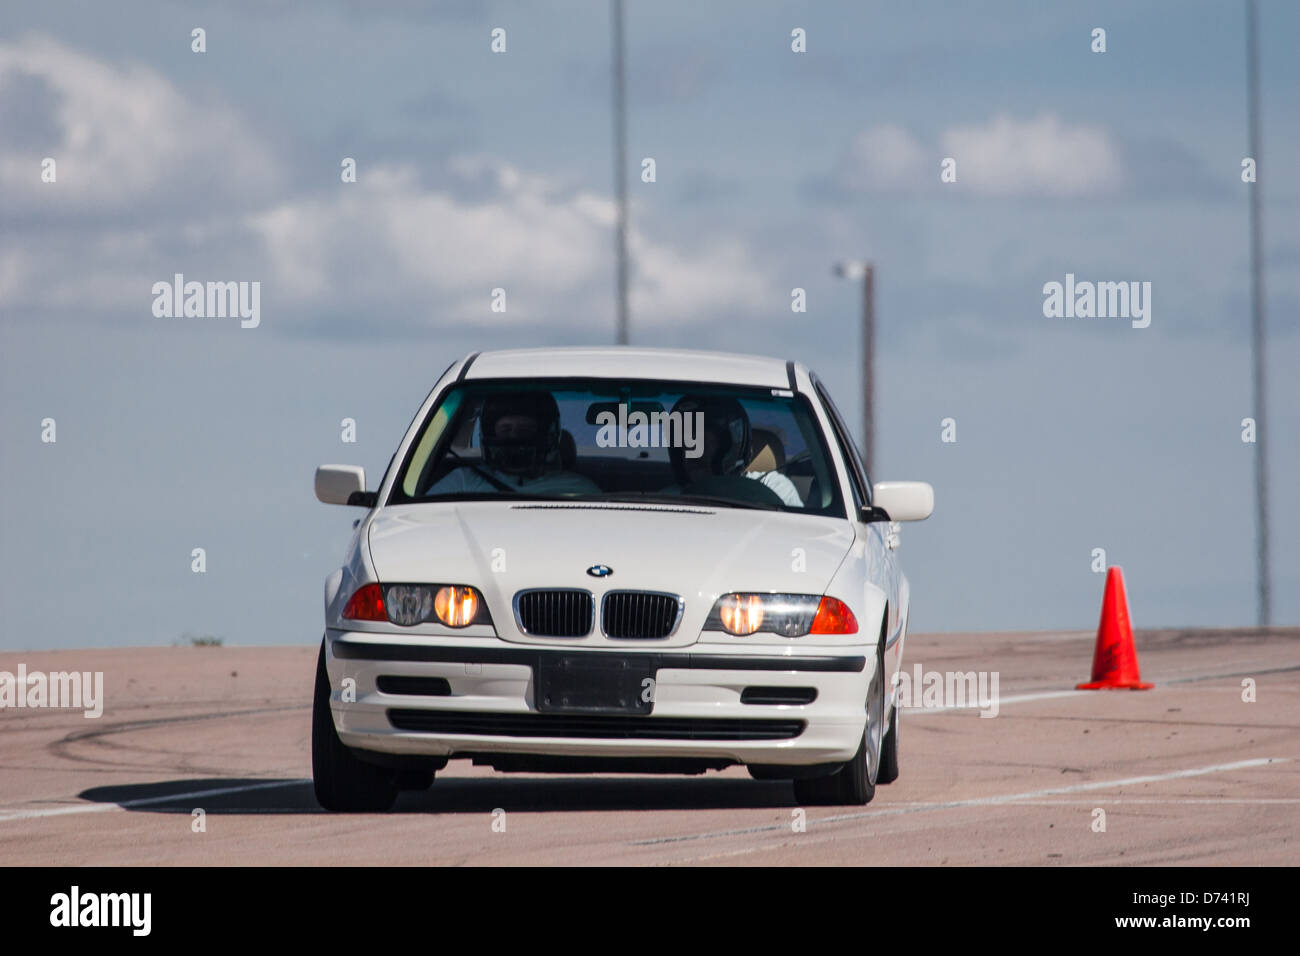 A 2001 White BMW 325 xi in an autocross race at a regional Sports Car Club of America (SCCA) event - Stock Image